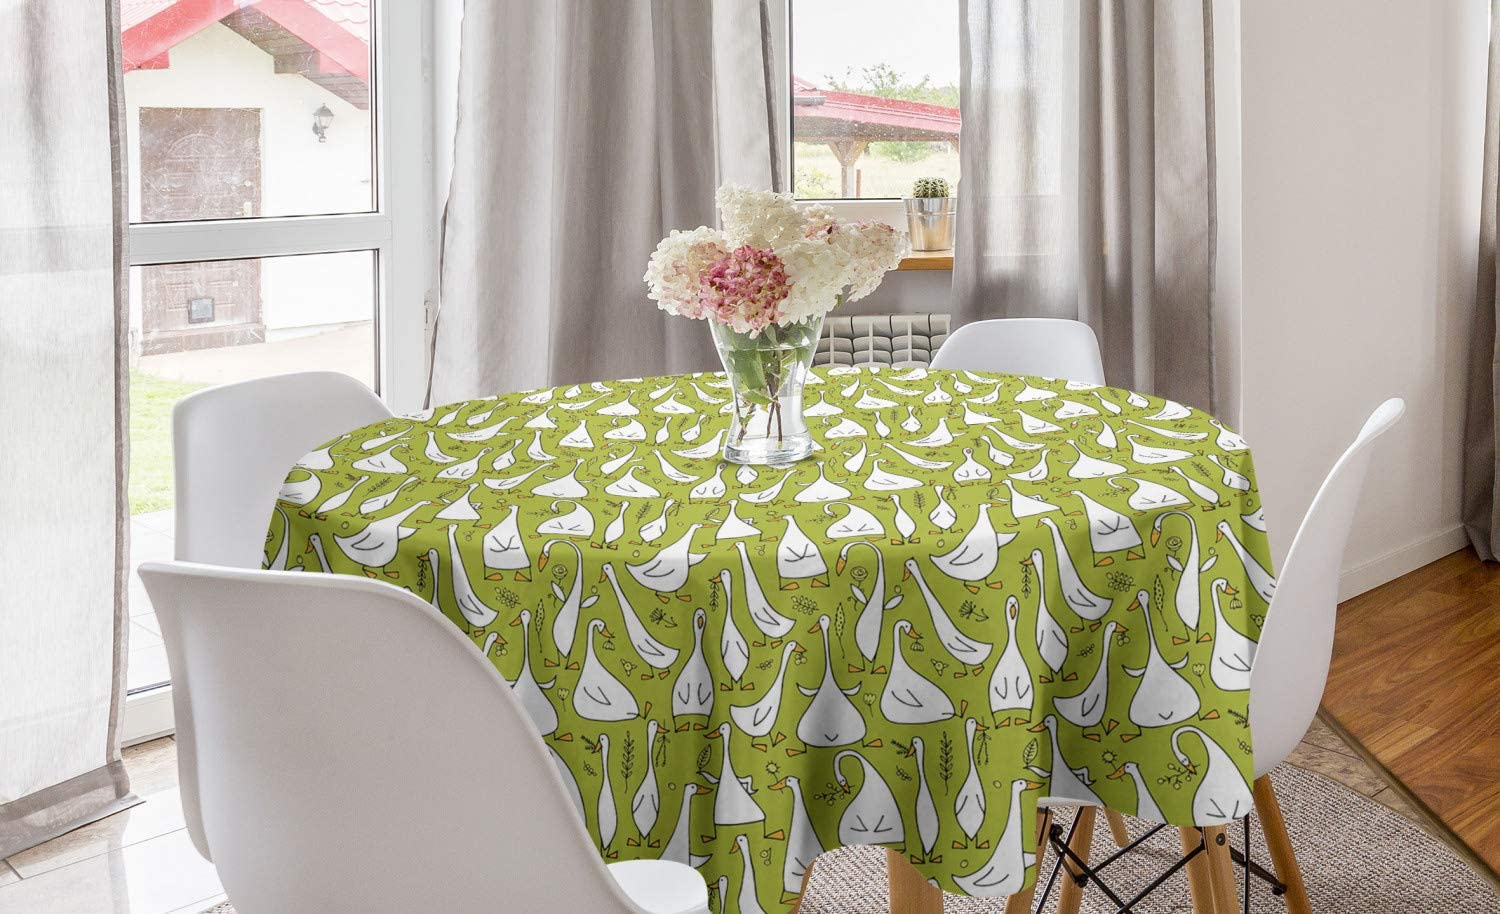 Ambesonne Goose Round Tablecloth, Cartoon Style Funny Creatures Doing Different Things Childish Nursery Theme, Circle Table Cloth Cover for Dining Room Kitchen Decoration, 60